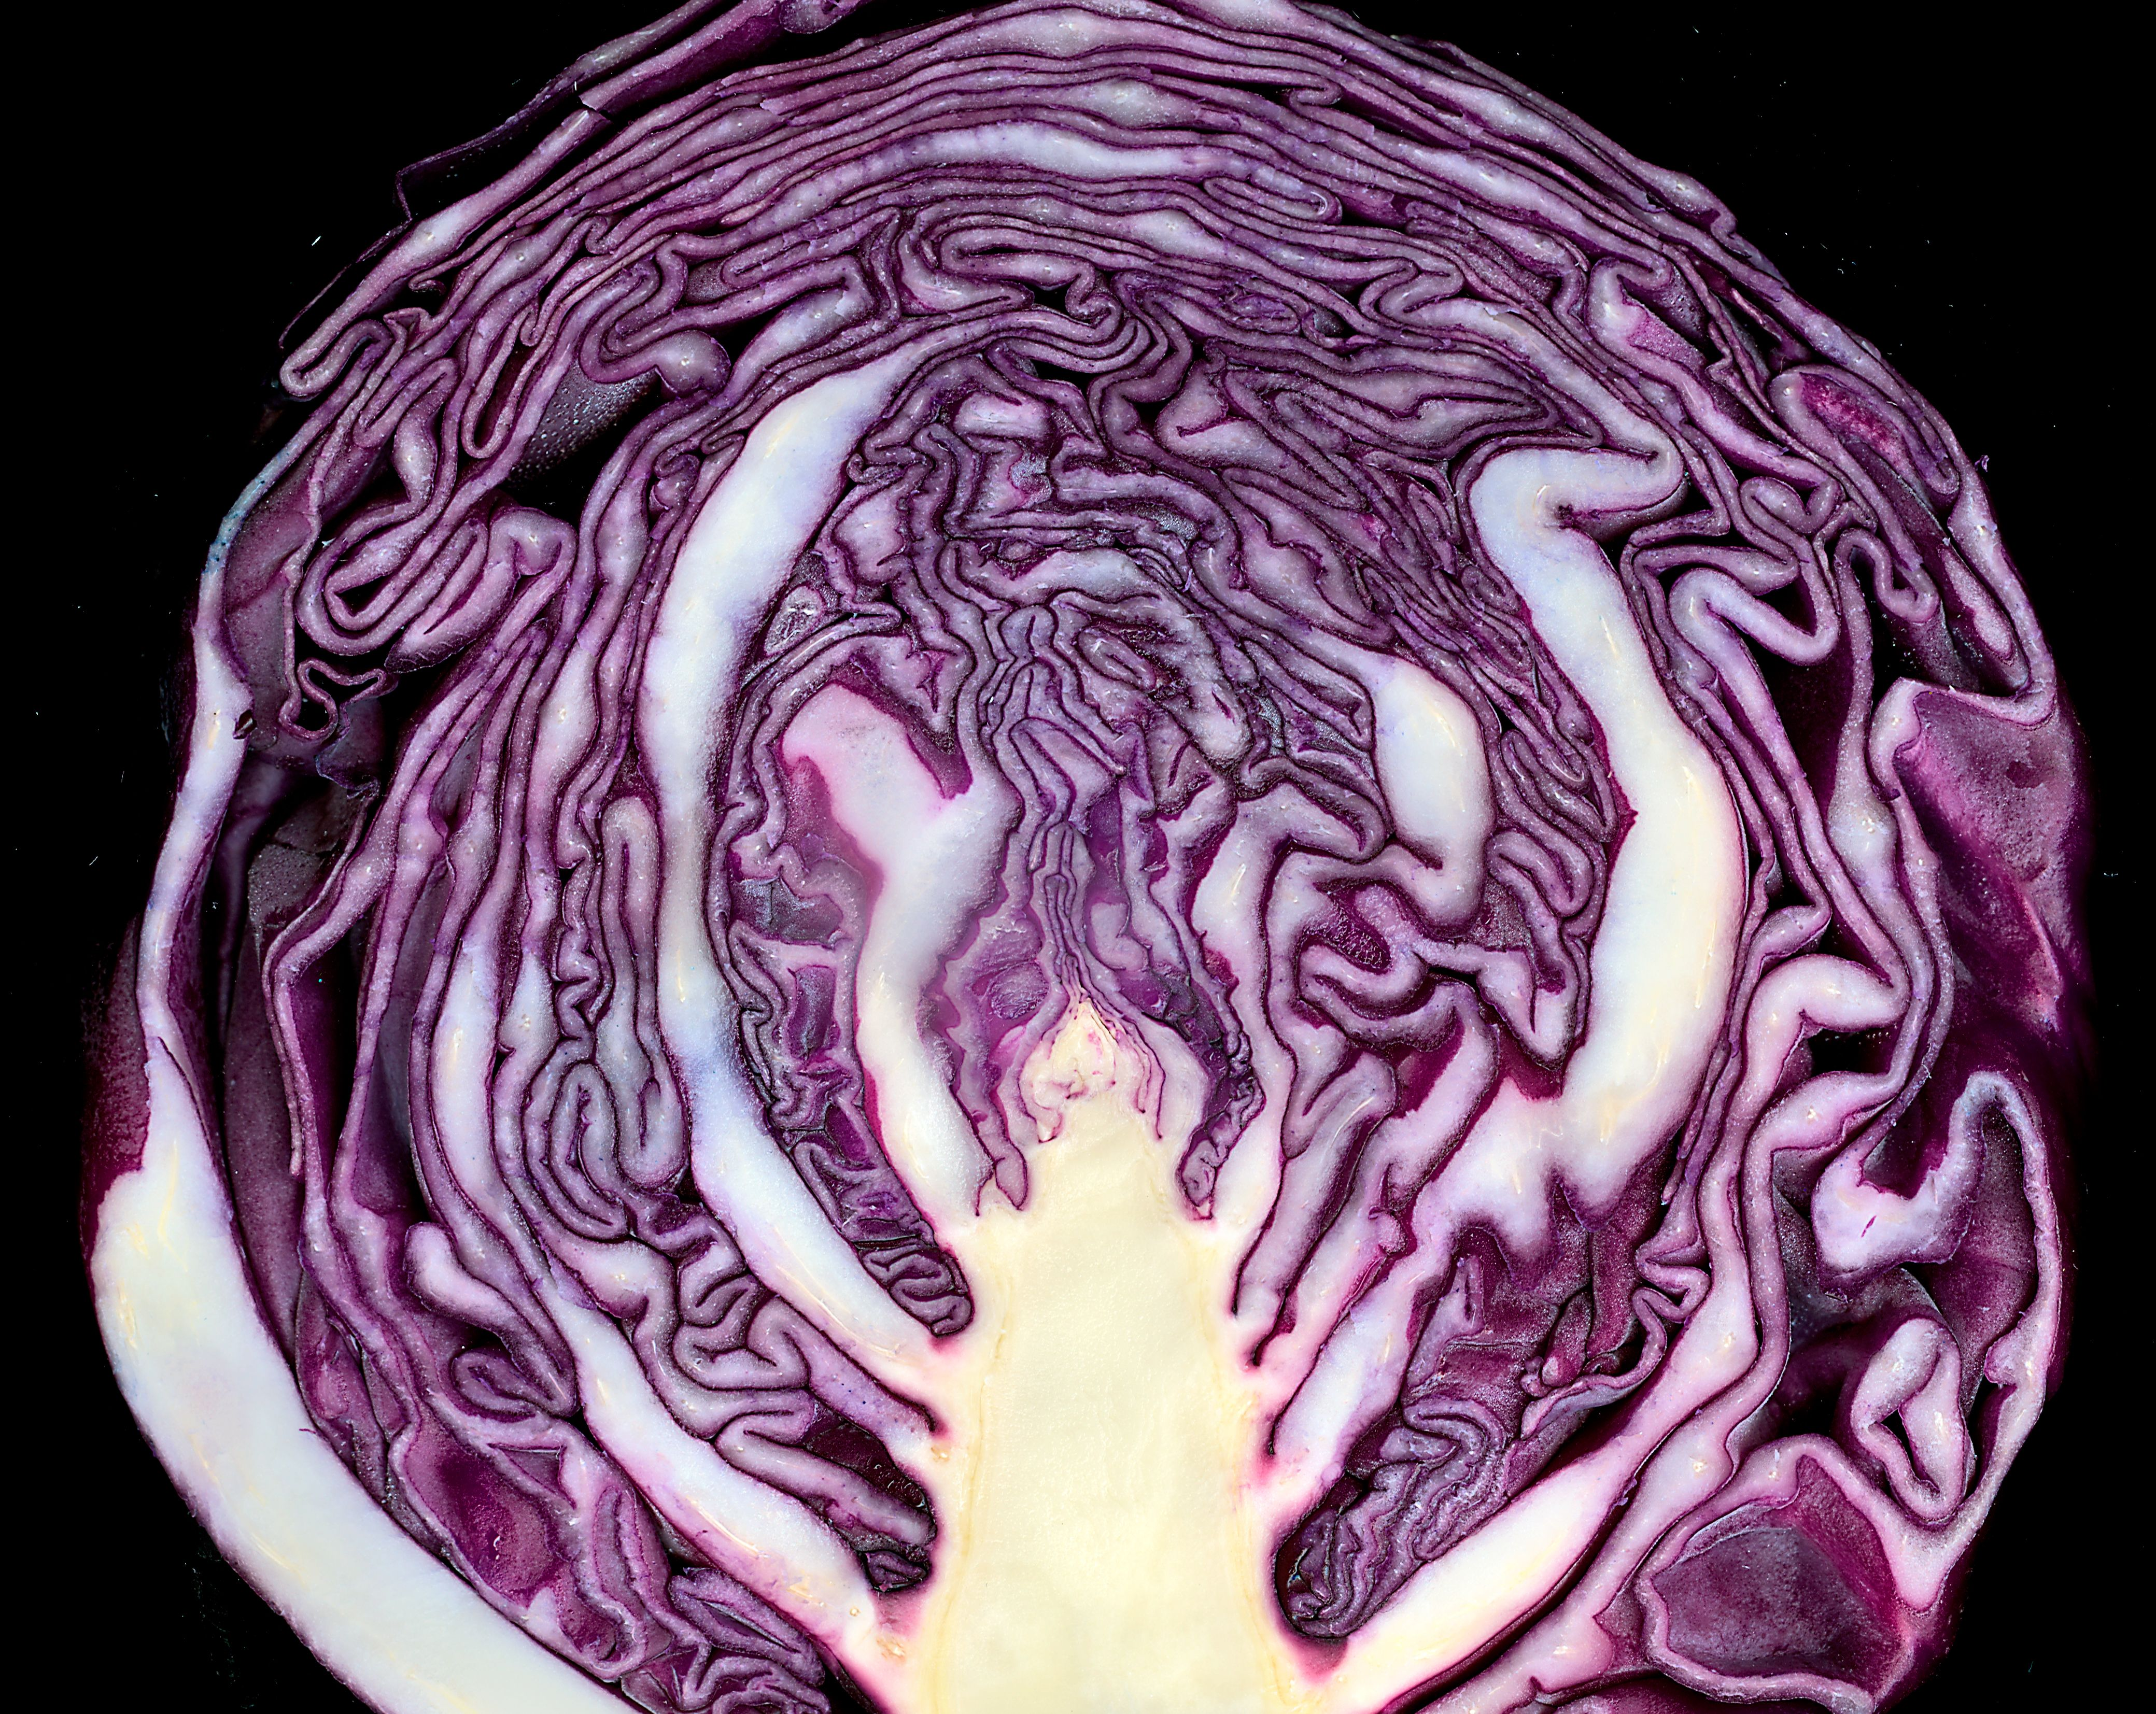 Red (or purple) cabbage.